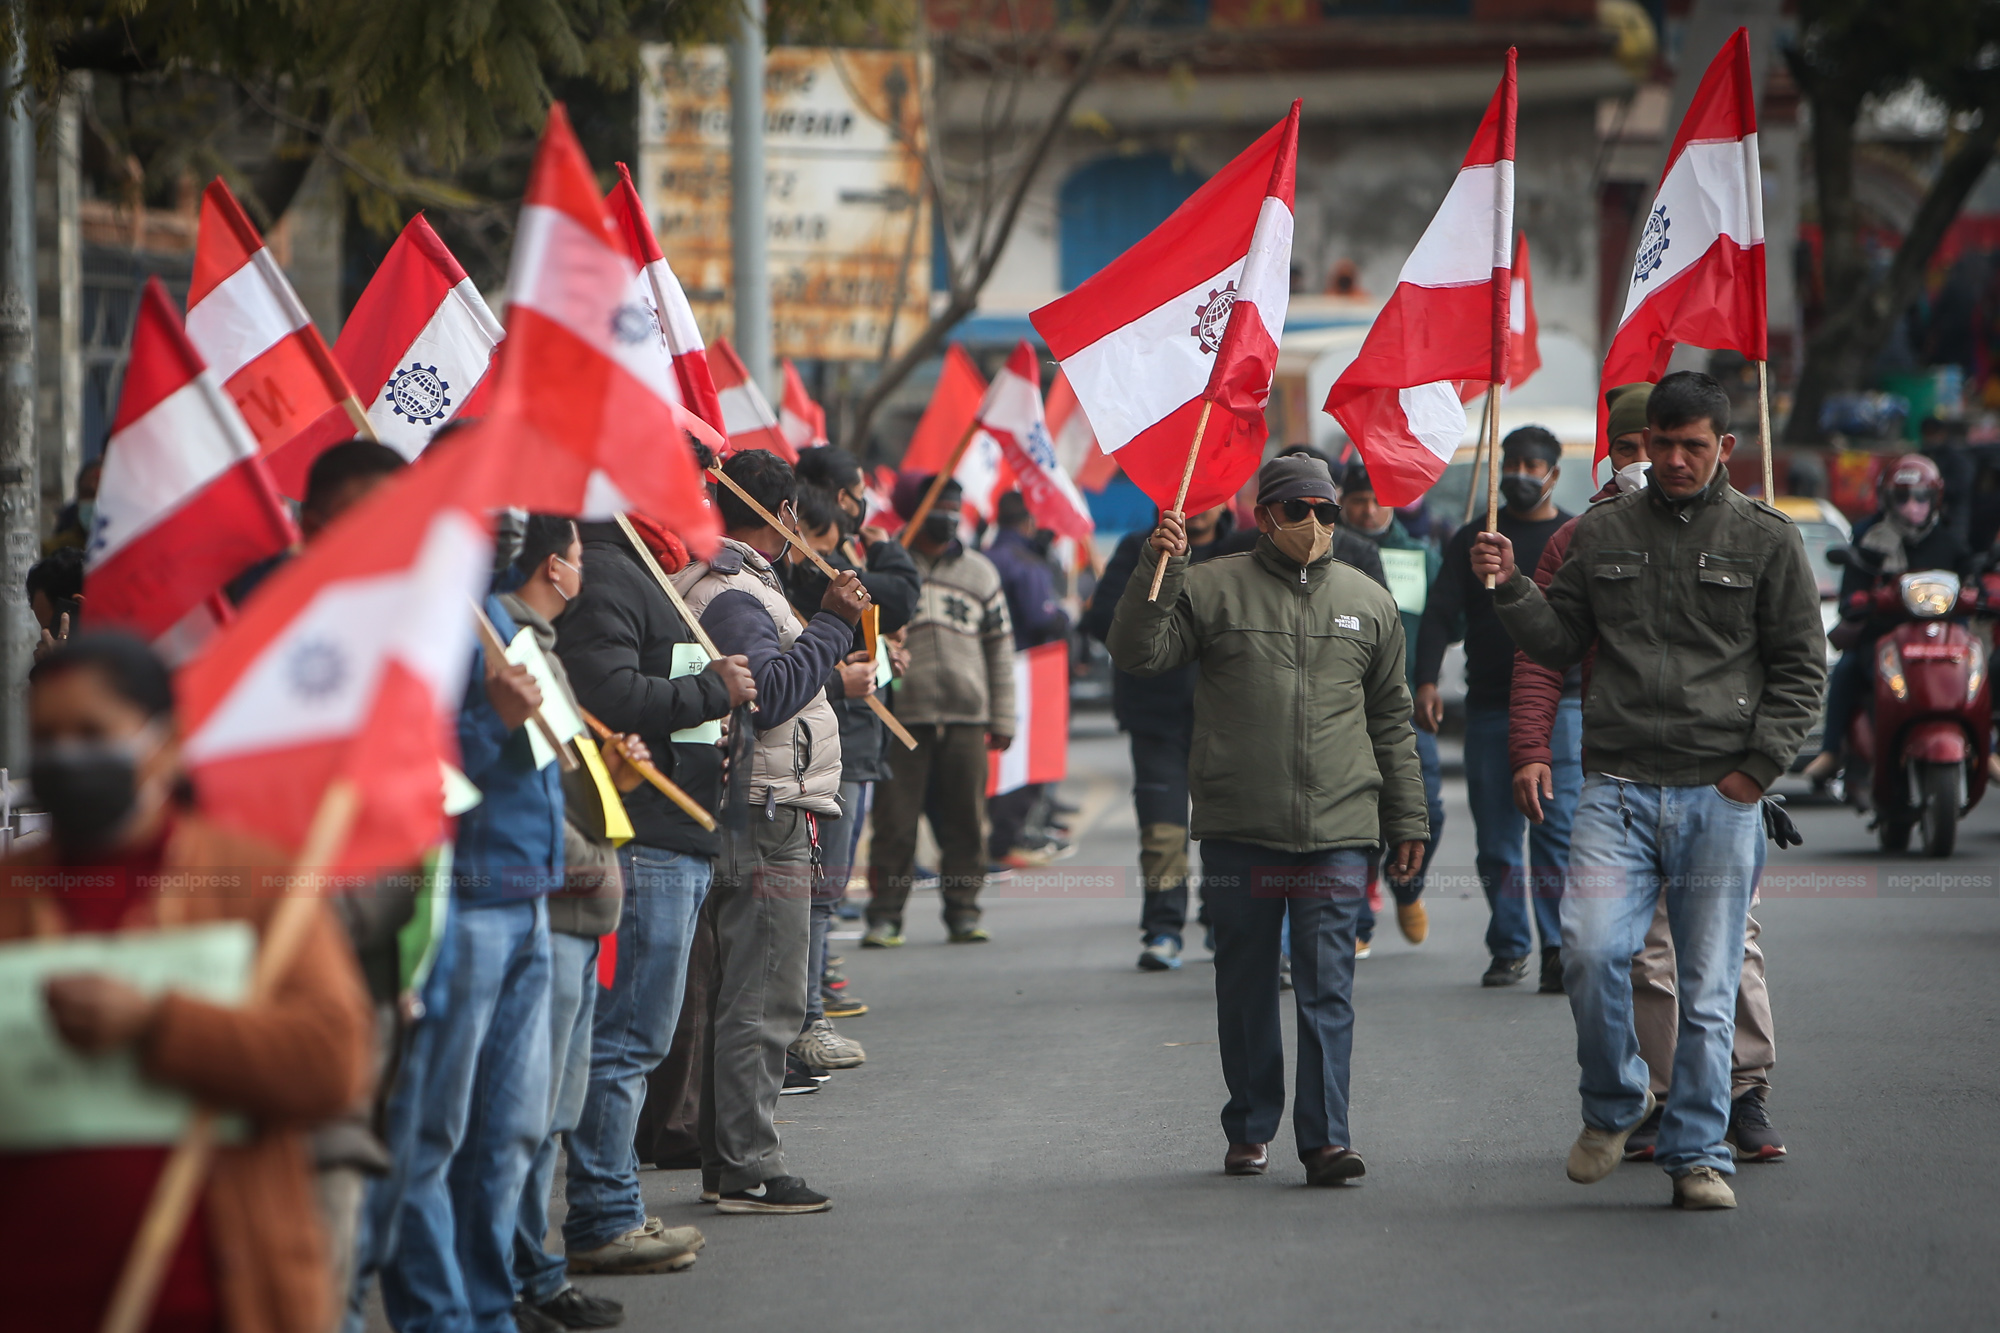 Anti-Government demonstration in 77 districts by Nepali Congress today